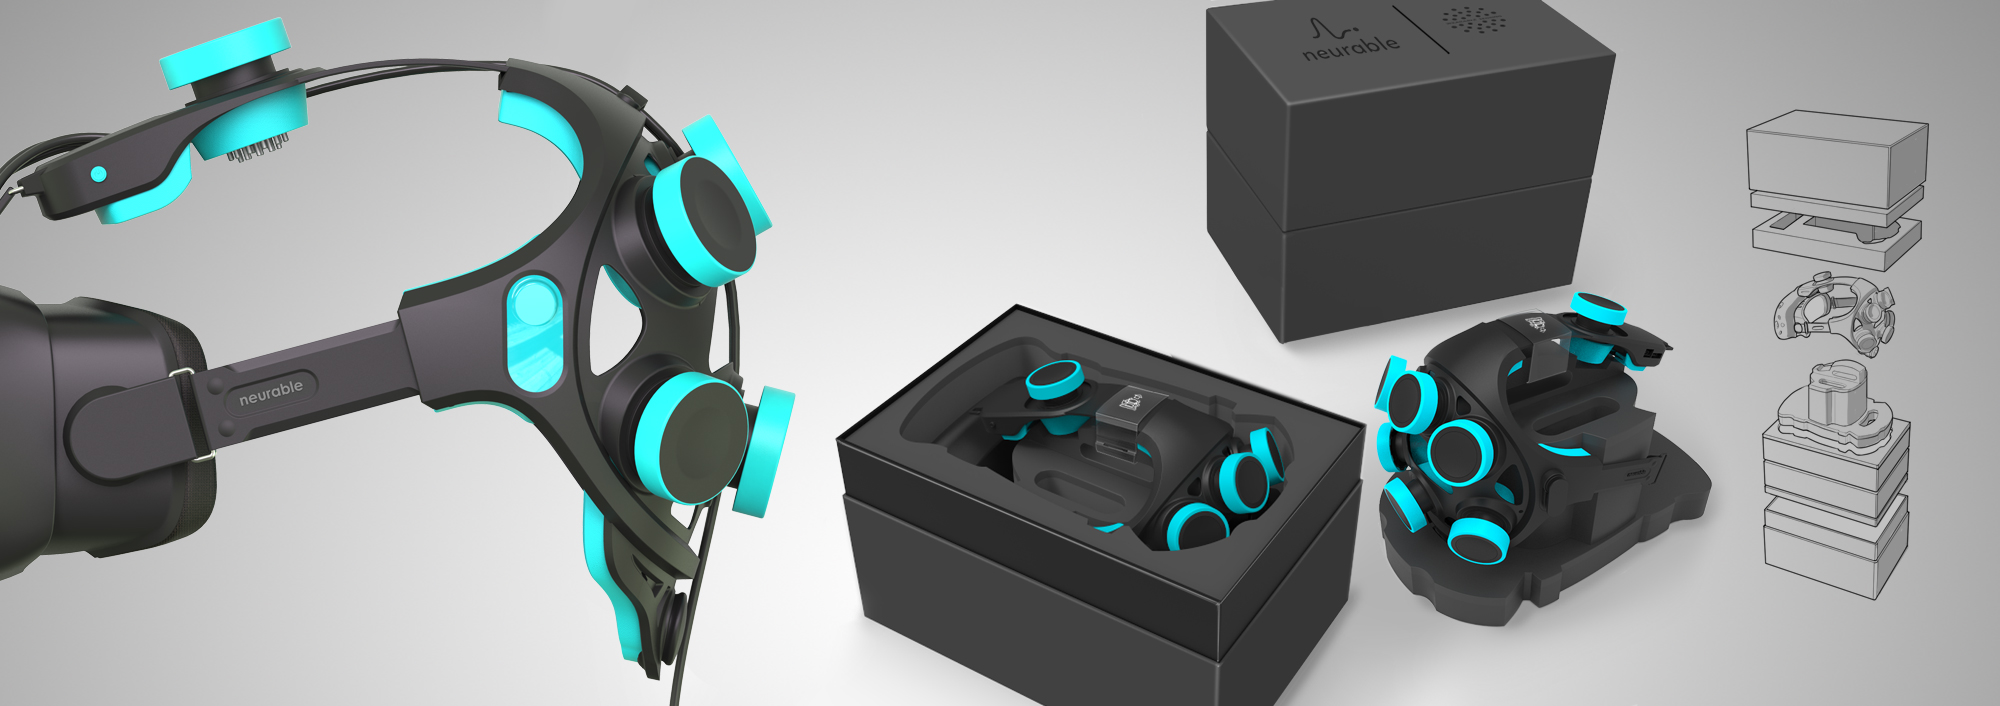 Neurable_headset_04a